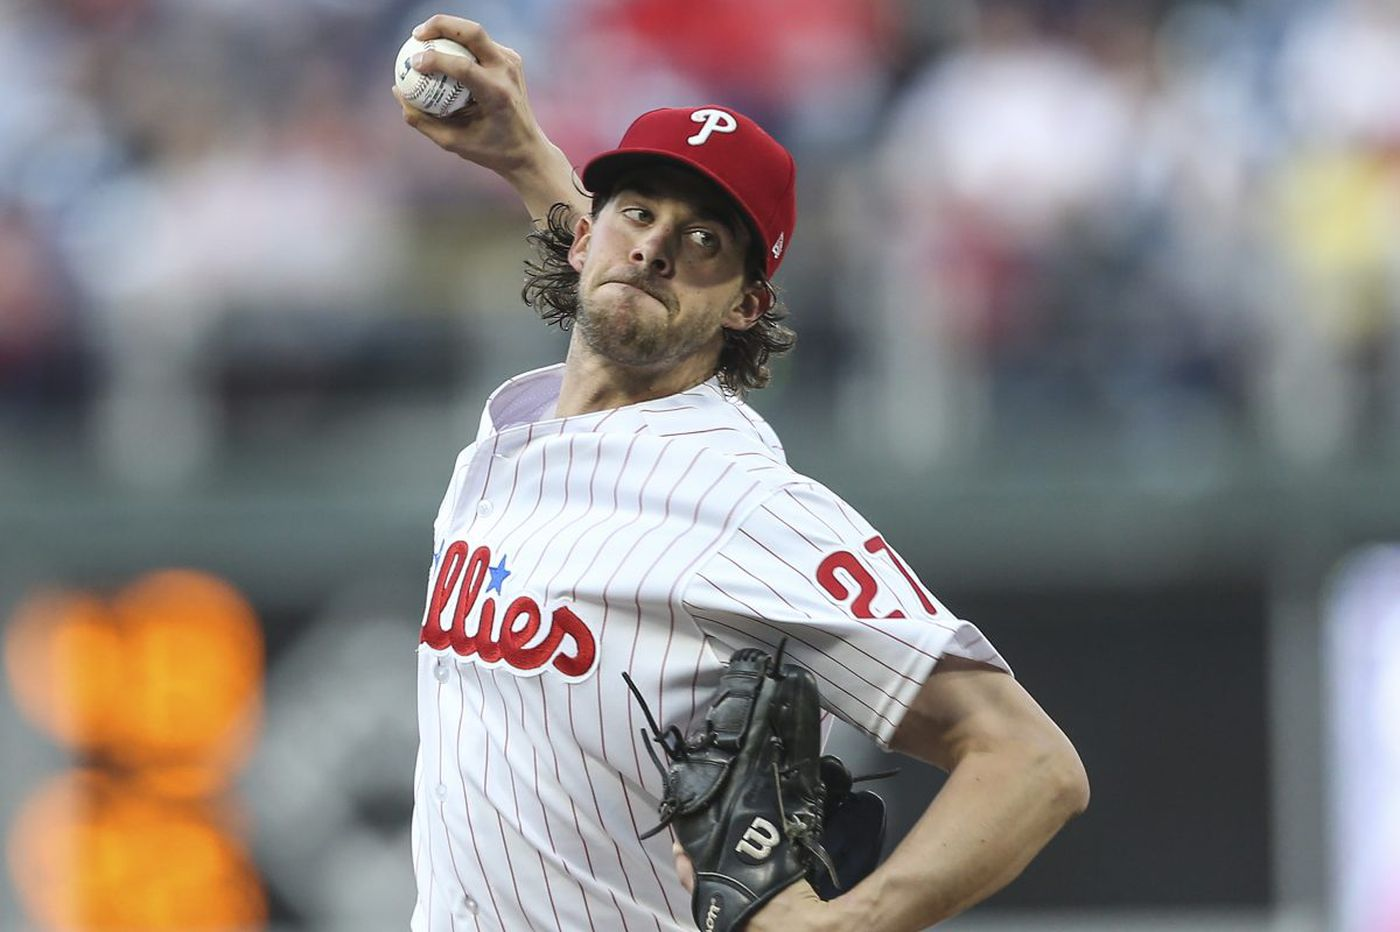 Aaron Nola dominates Giants with 12 strikeouts, showcases his change-up in Phillies win